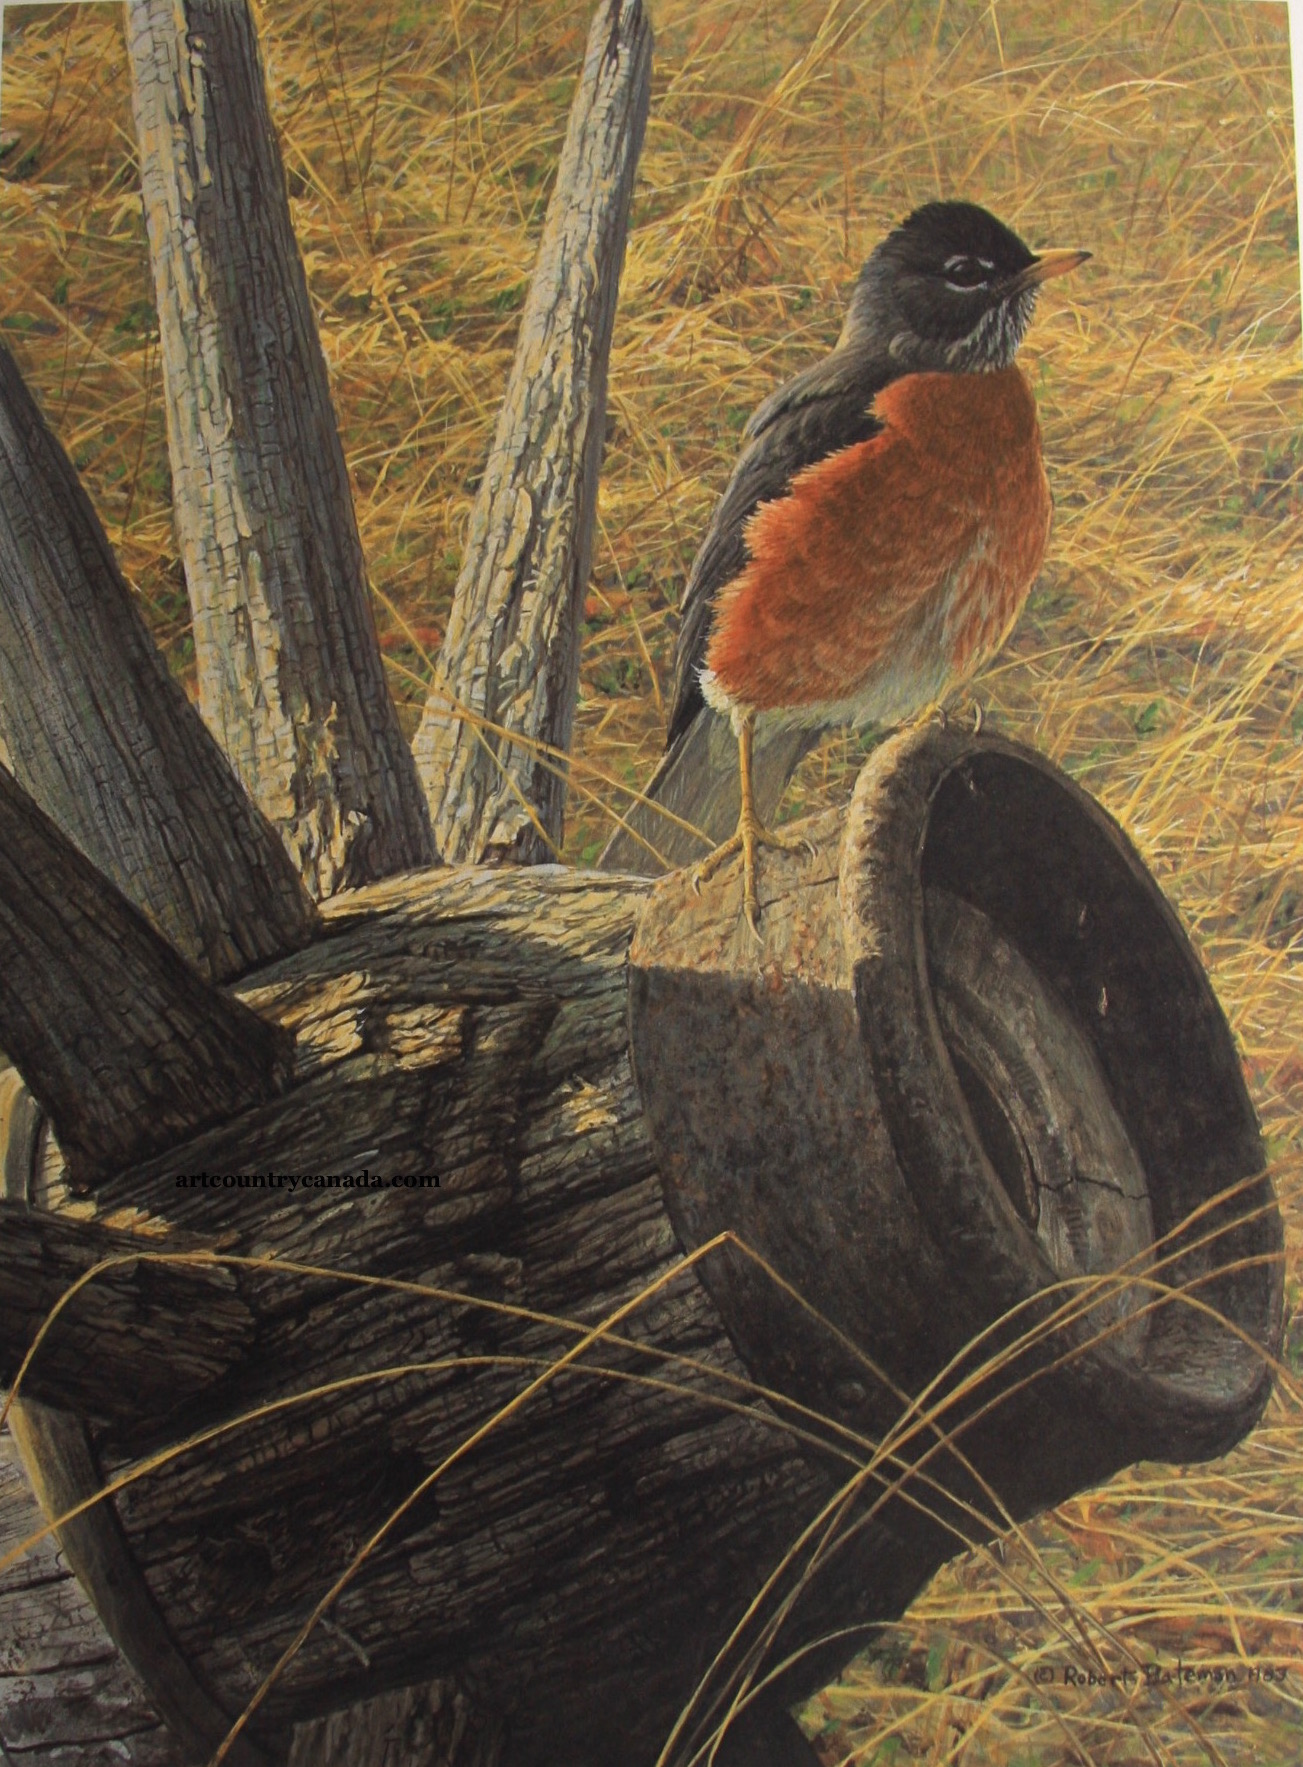 Robert Bateman New Season American Robin